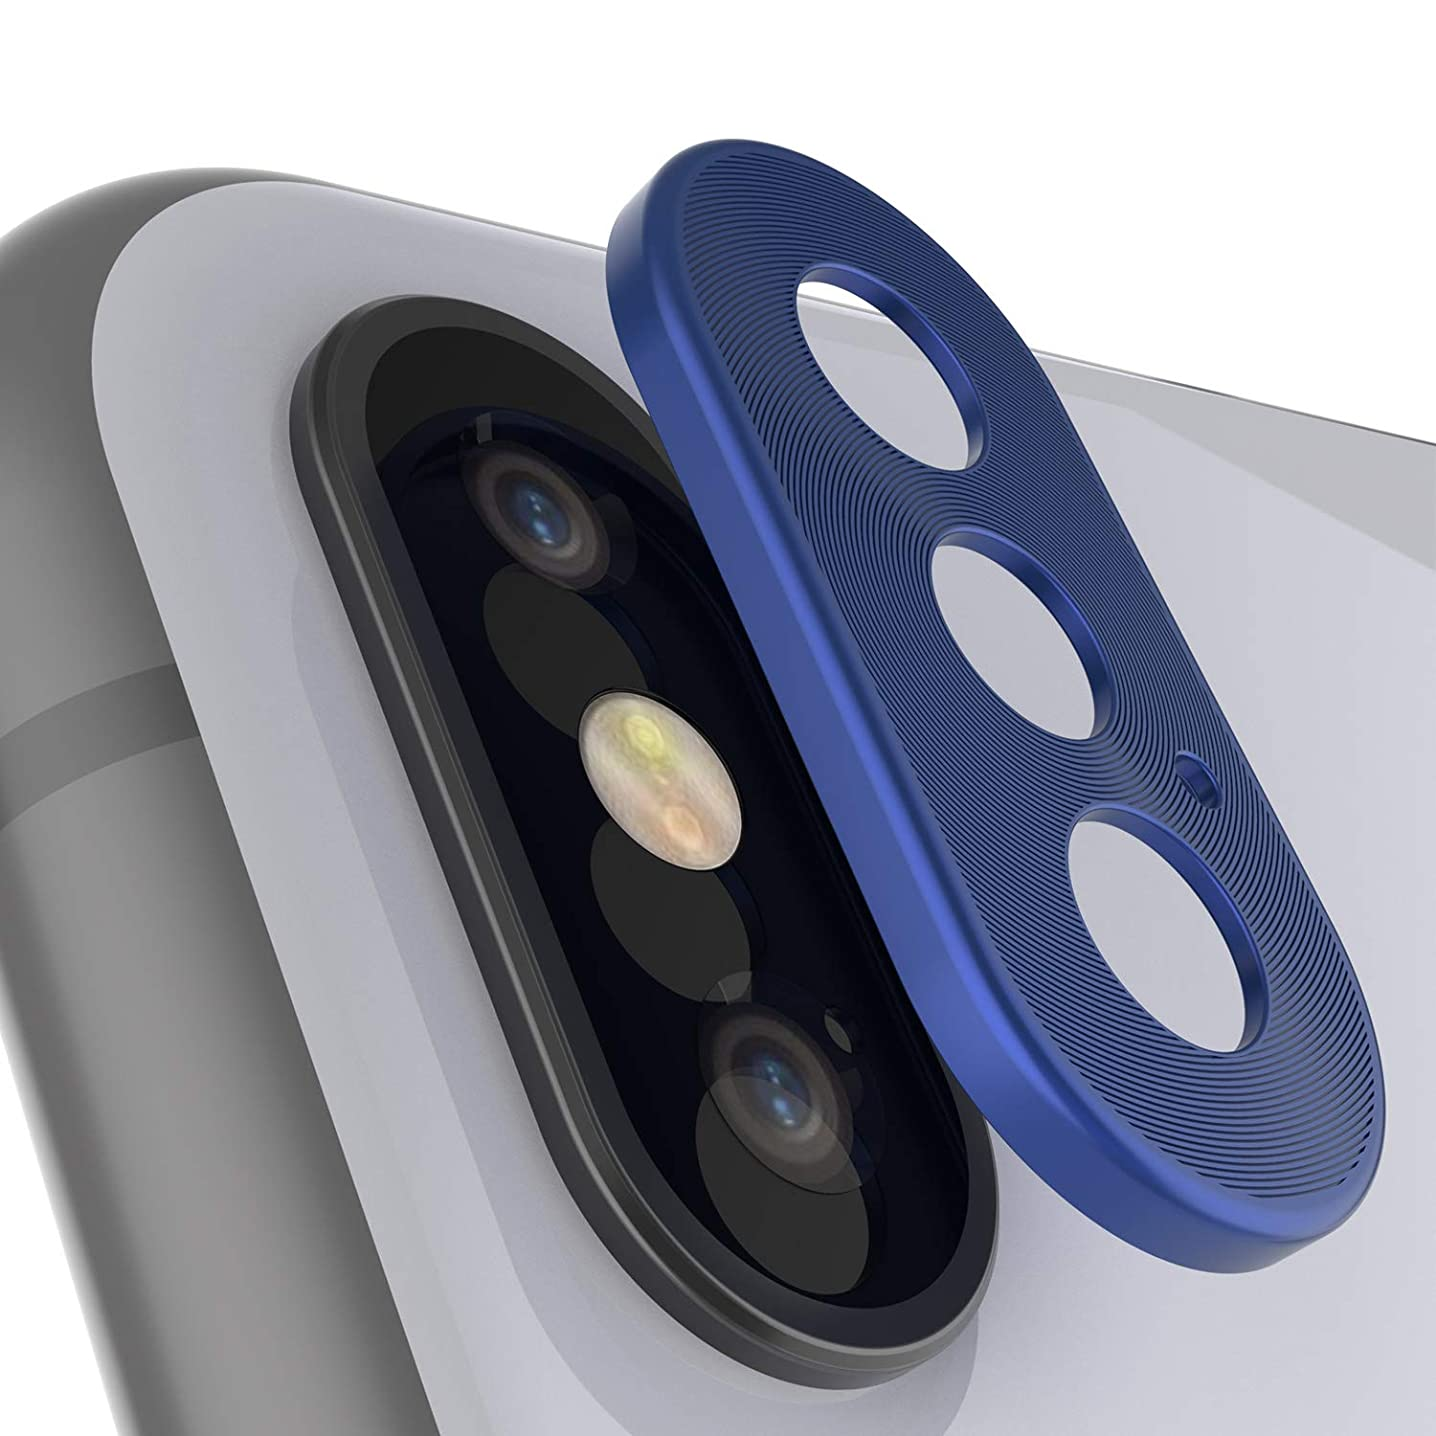 Punkcase Camera Protector Ring | Premium Aluminum Alloy Back Lens Cover Guard [Ultra Slim] Compatible W/Apple iPhone Xs Max (Blue)